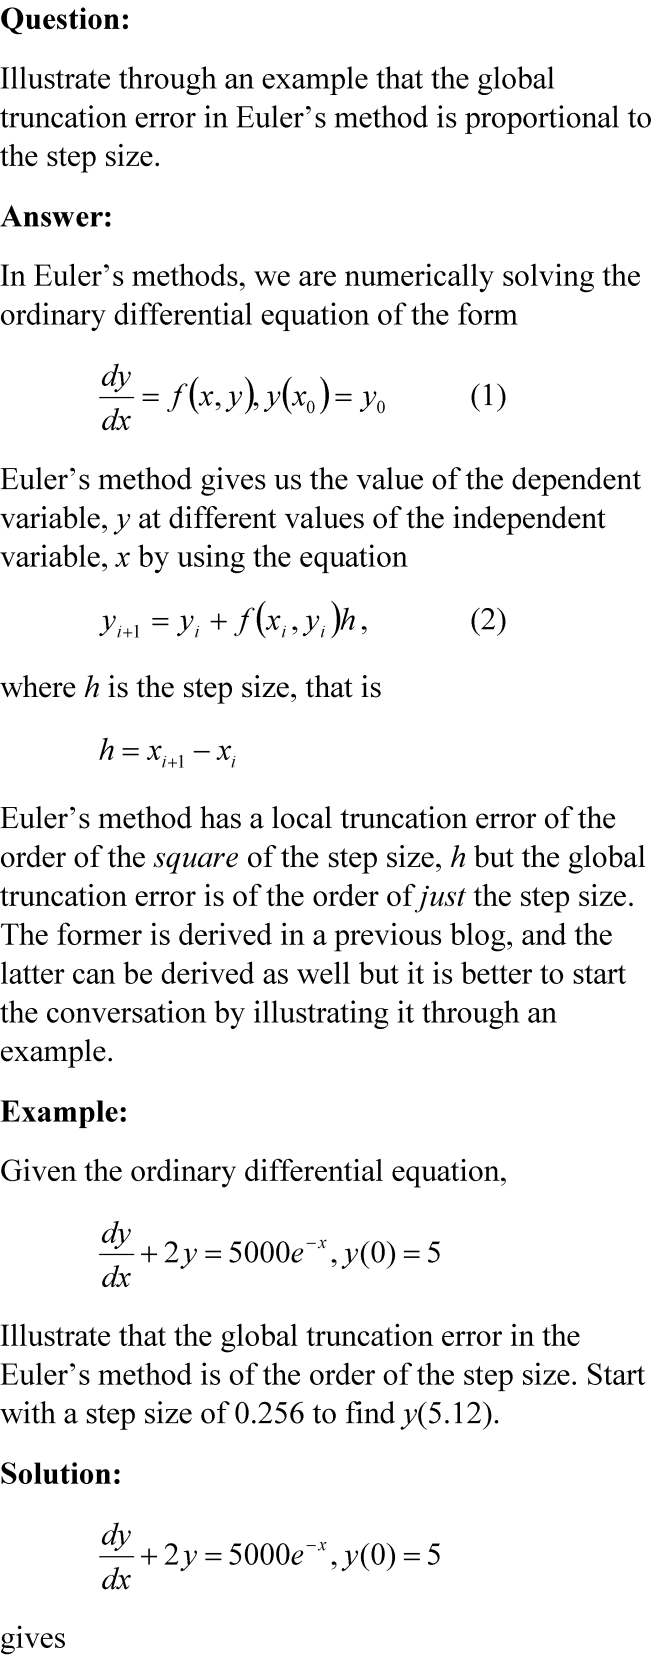 euler_truncation_global_pic1